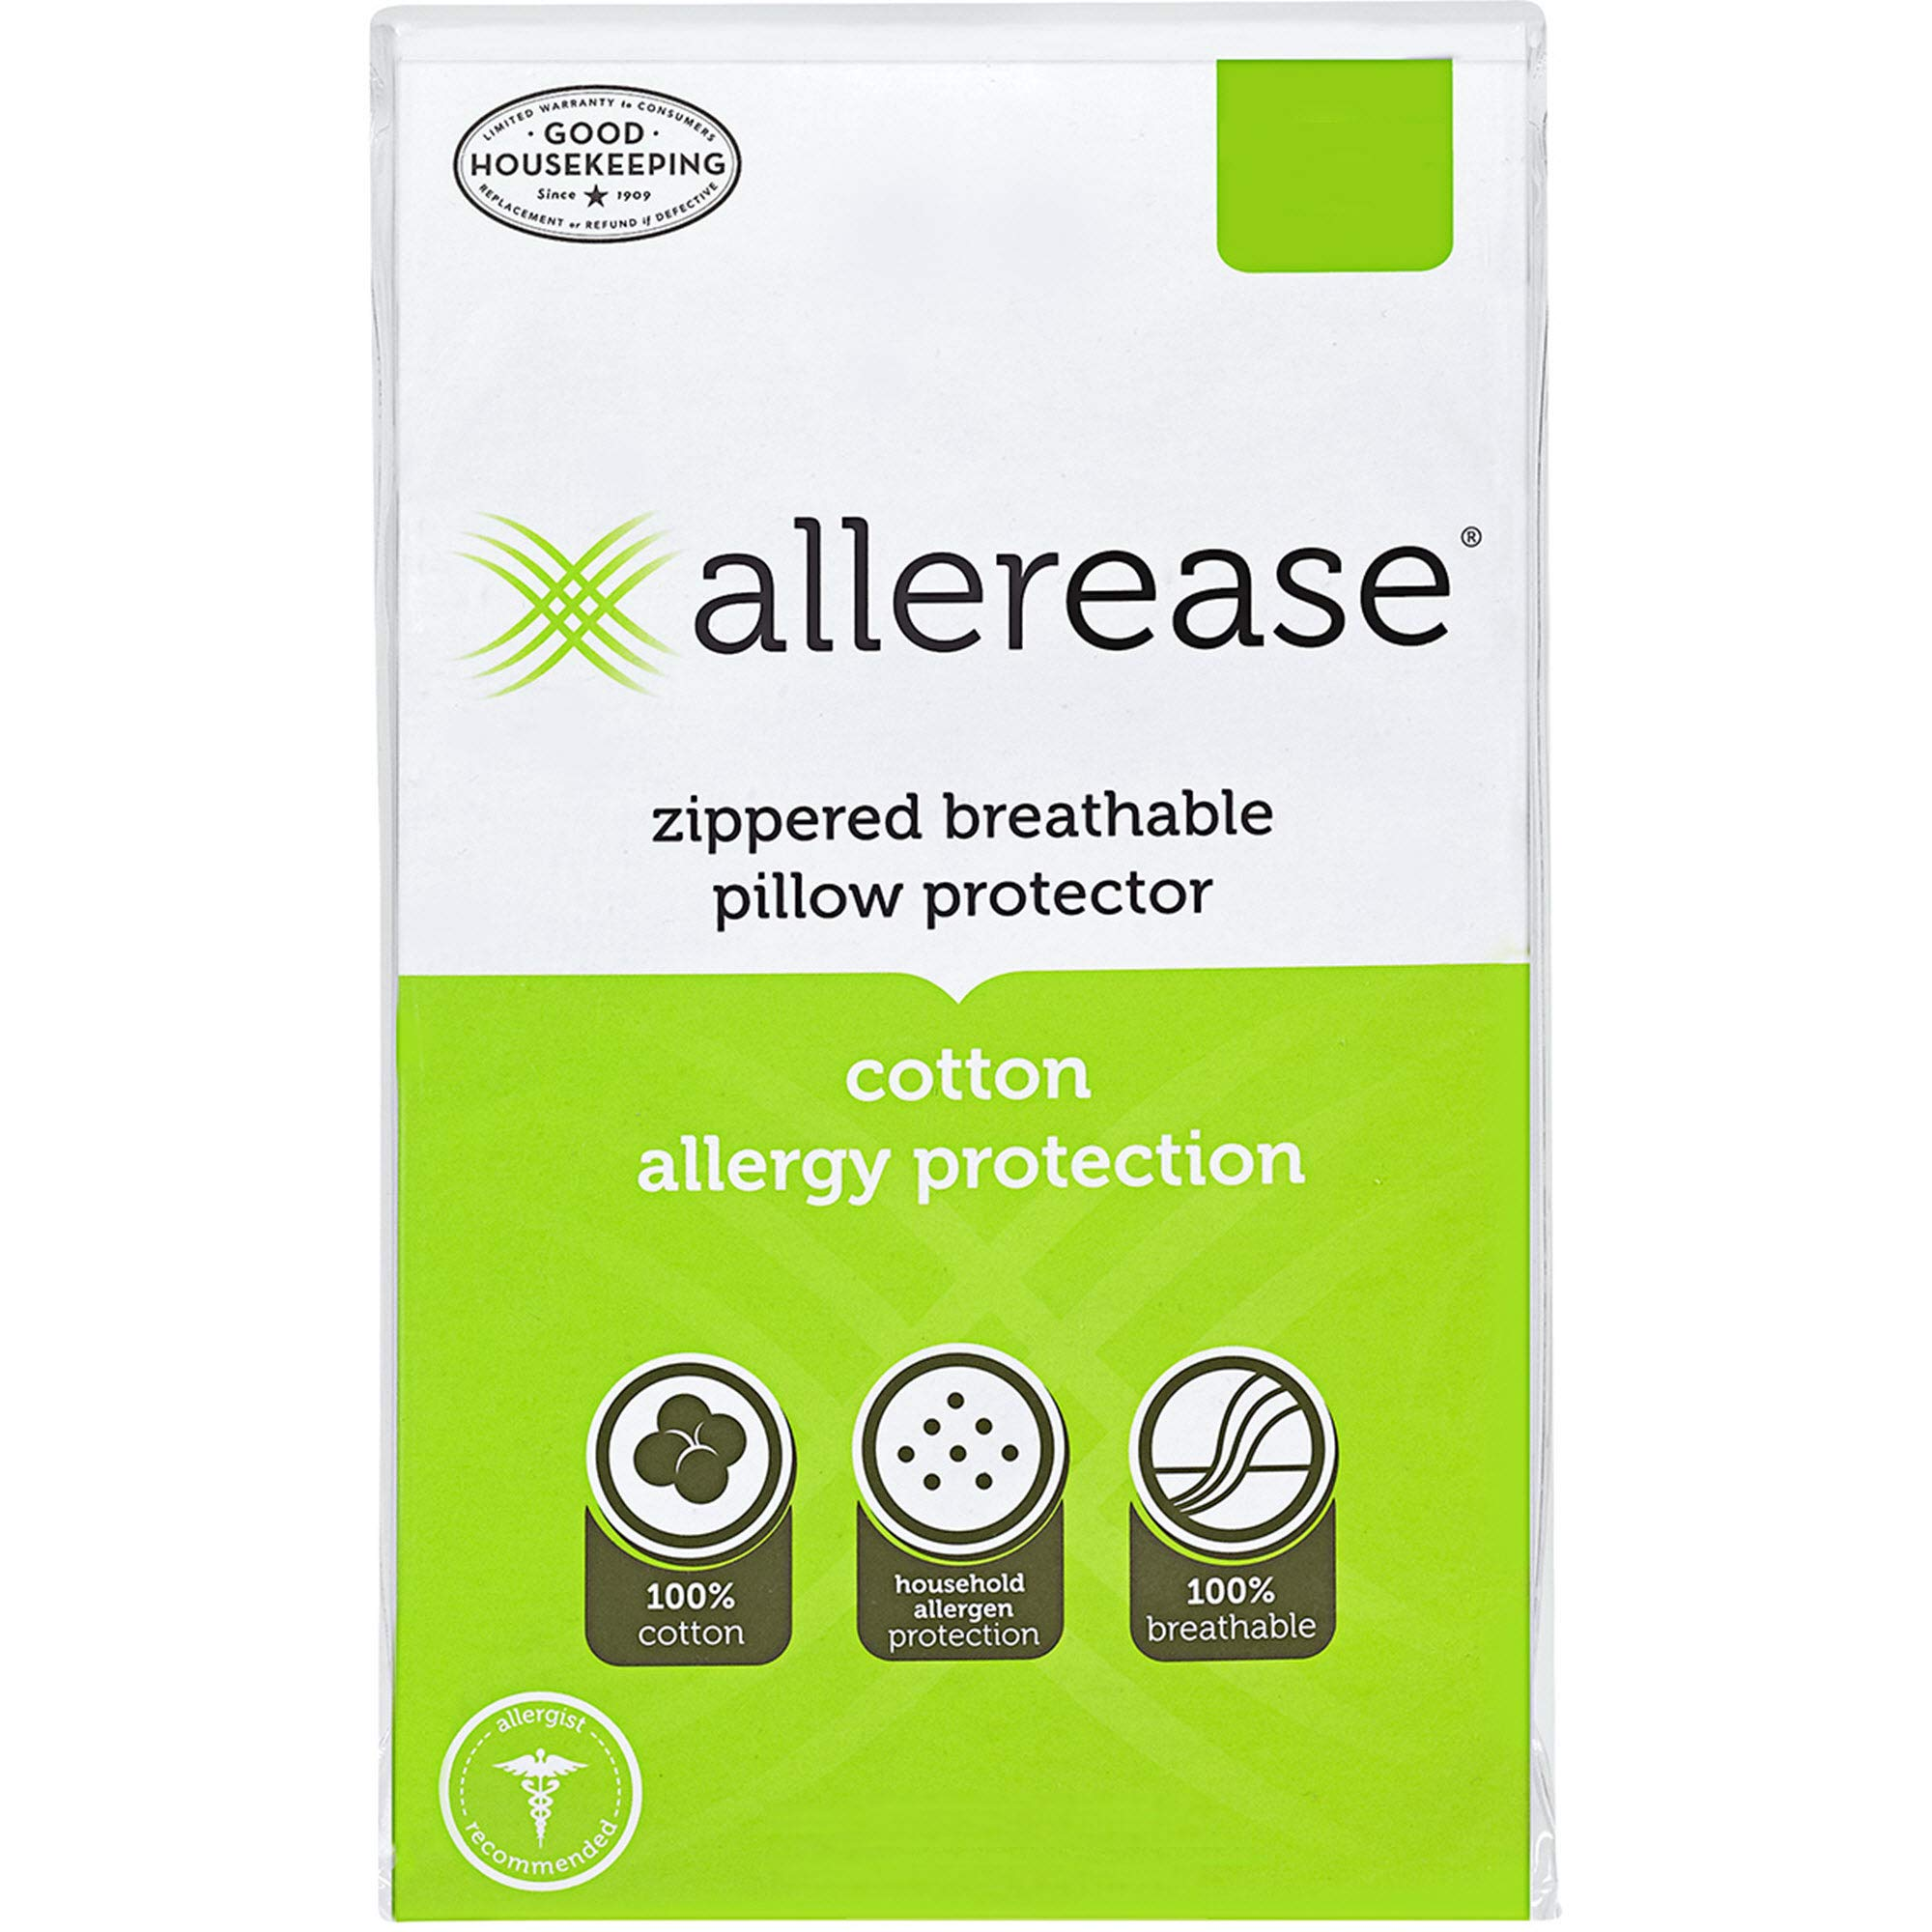 AllerEase 100% Cotton Allergy Protection Pillow Protectors - Hypoallergenic, Zippered, Allergist Recommended, Prevent Collection of Dust Mites and Other Allergens, Queen Sized, 20'' x 30'' (Set of 2) by Aller-Ease